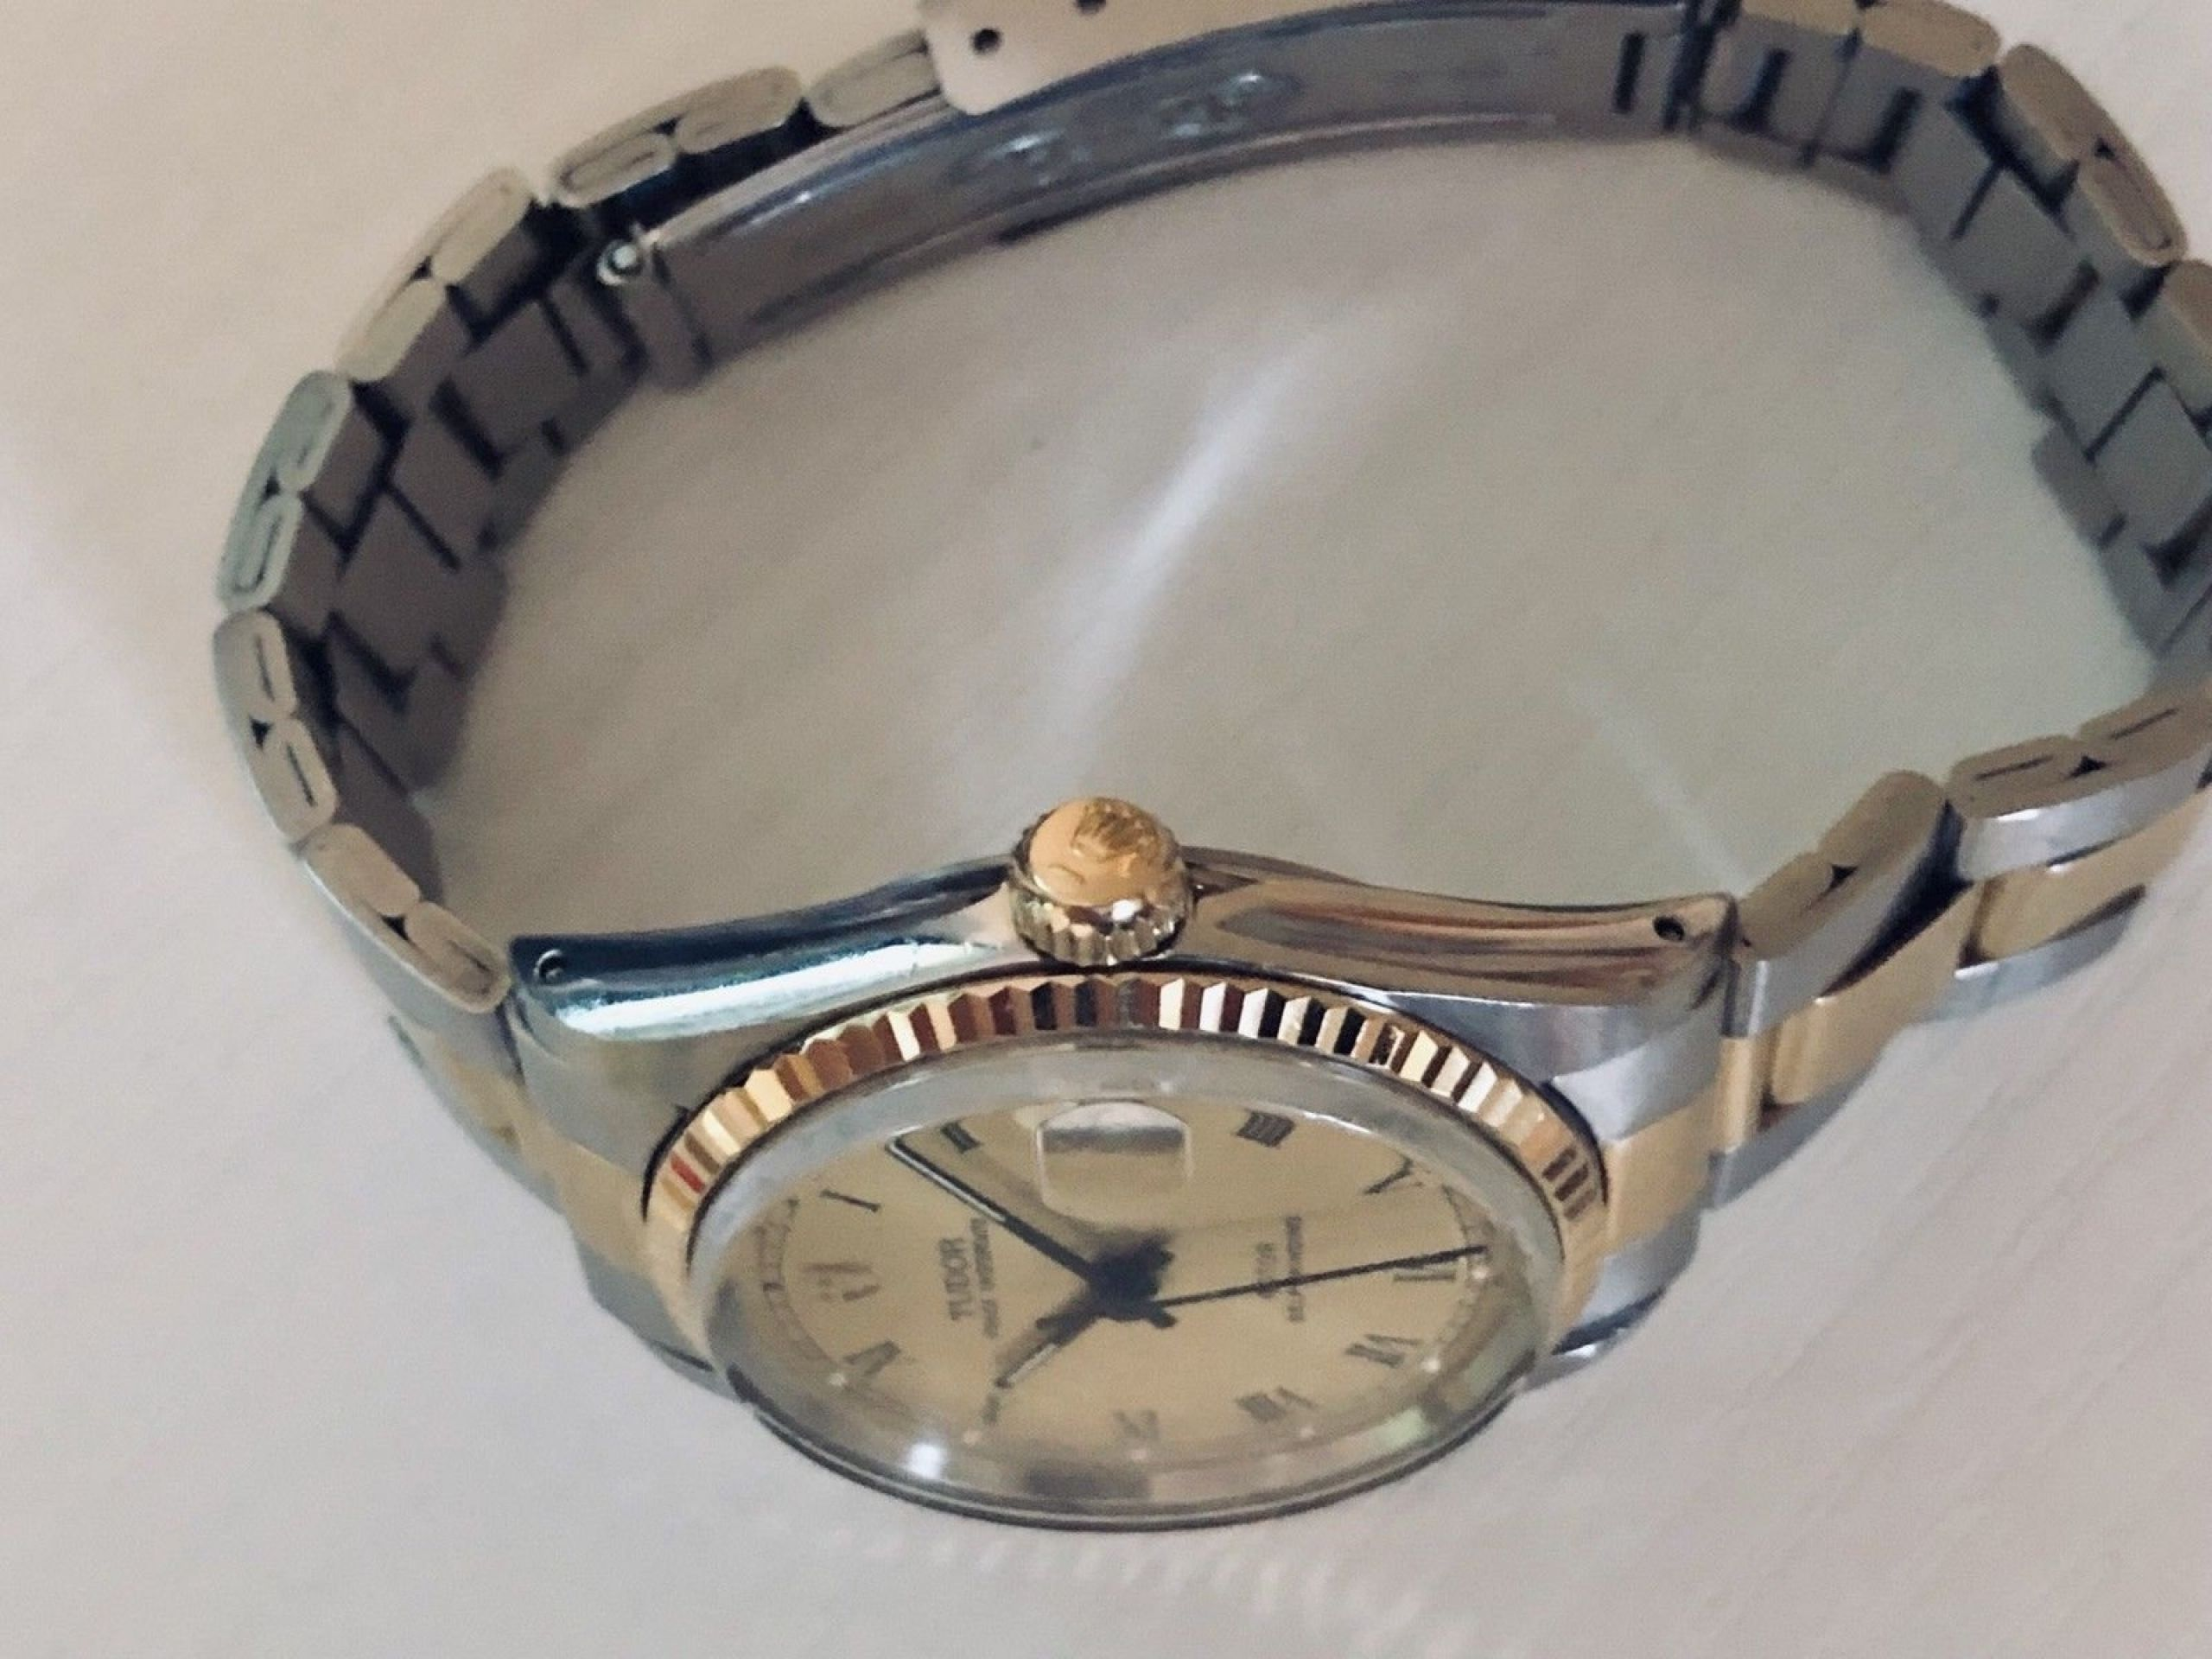 VINTAGE 1970'S TUDOR PRINCE OYSTERDATE AUTOMATIC WATCH MENS LADY MIDSIZE 31MM